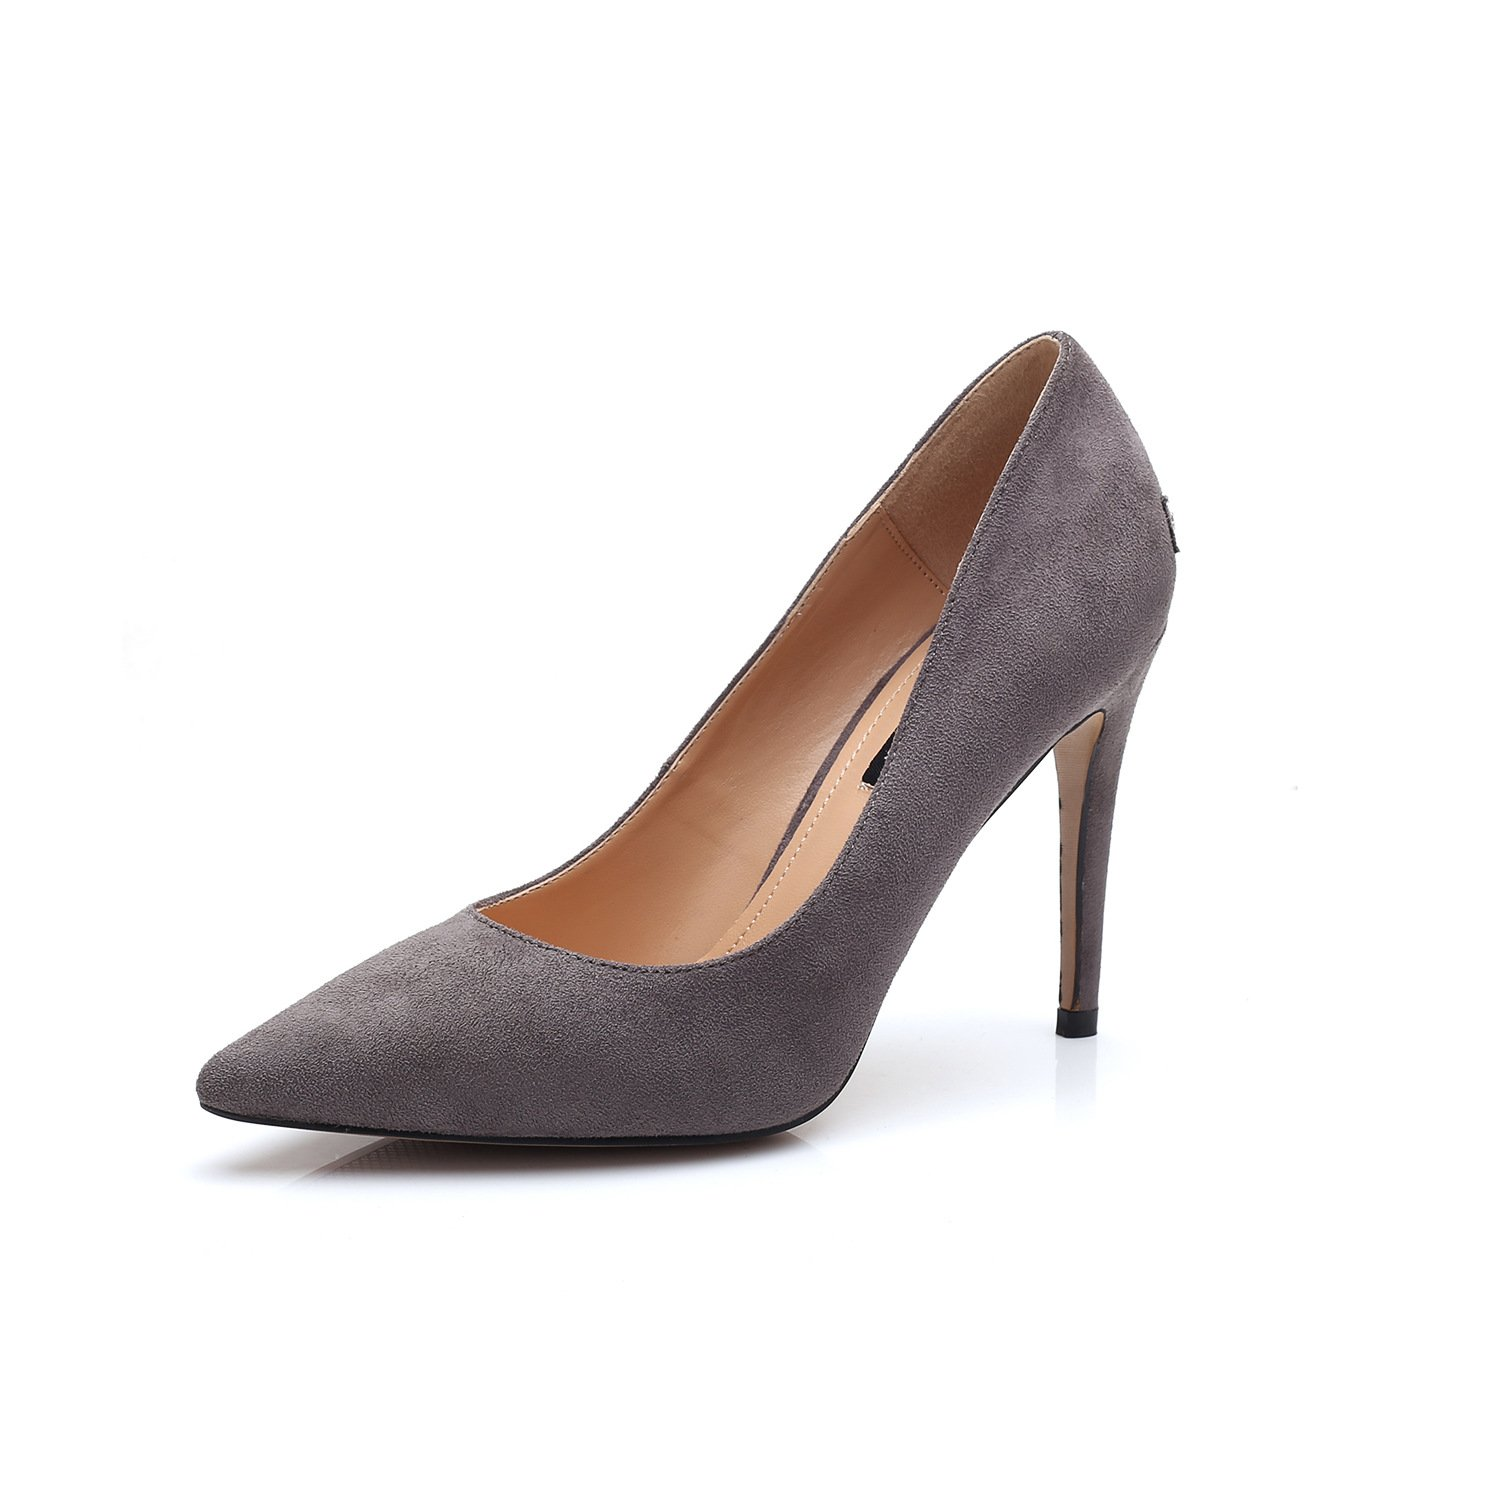 Tip single shoes high-heeled shoes fine satin shoes with a sweet sexy black, gray, 34